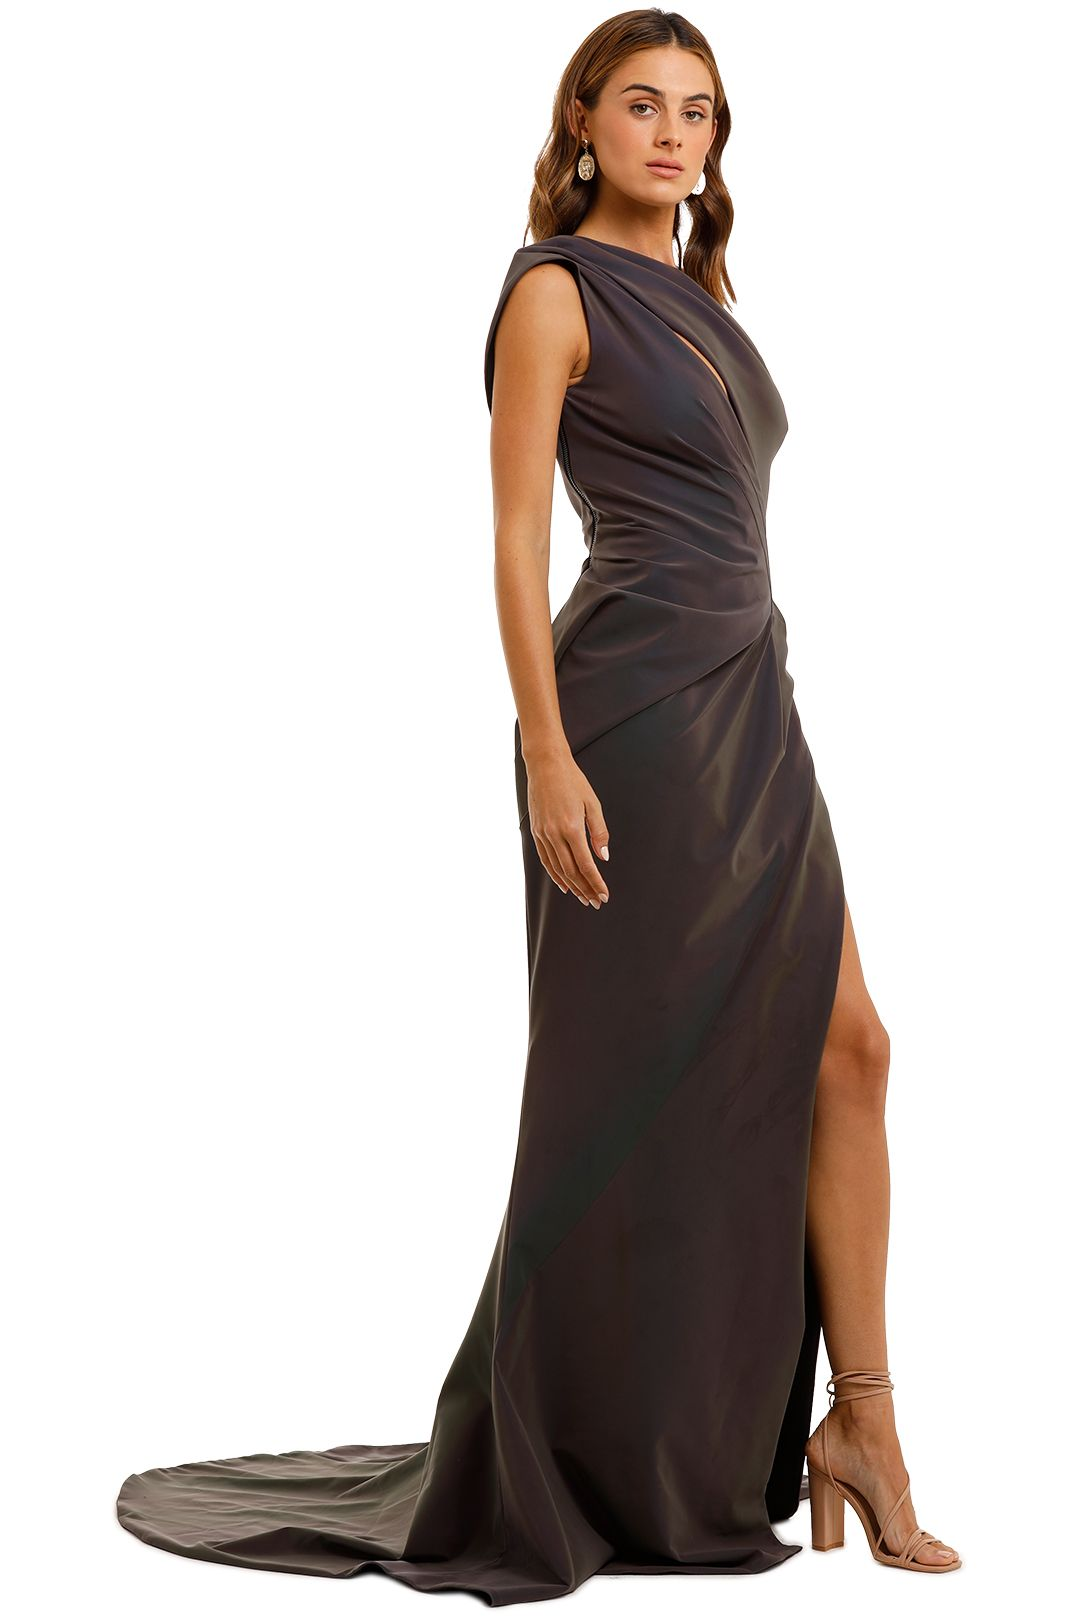 Maticevski Boundless Gown multi cut out